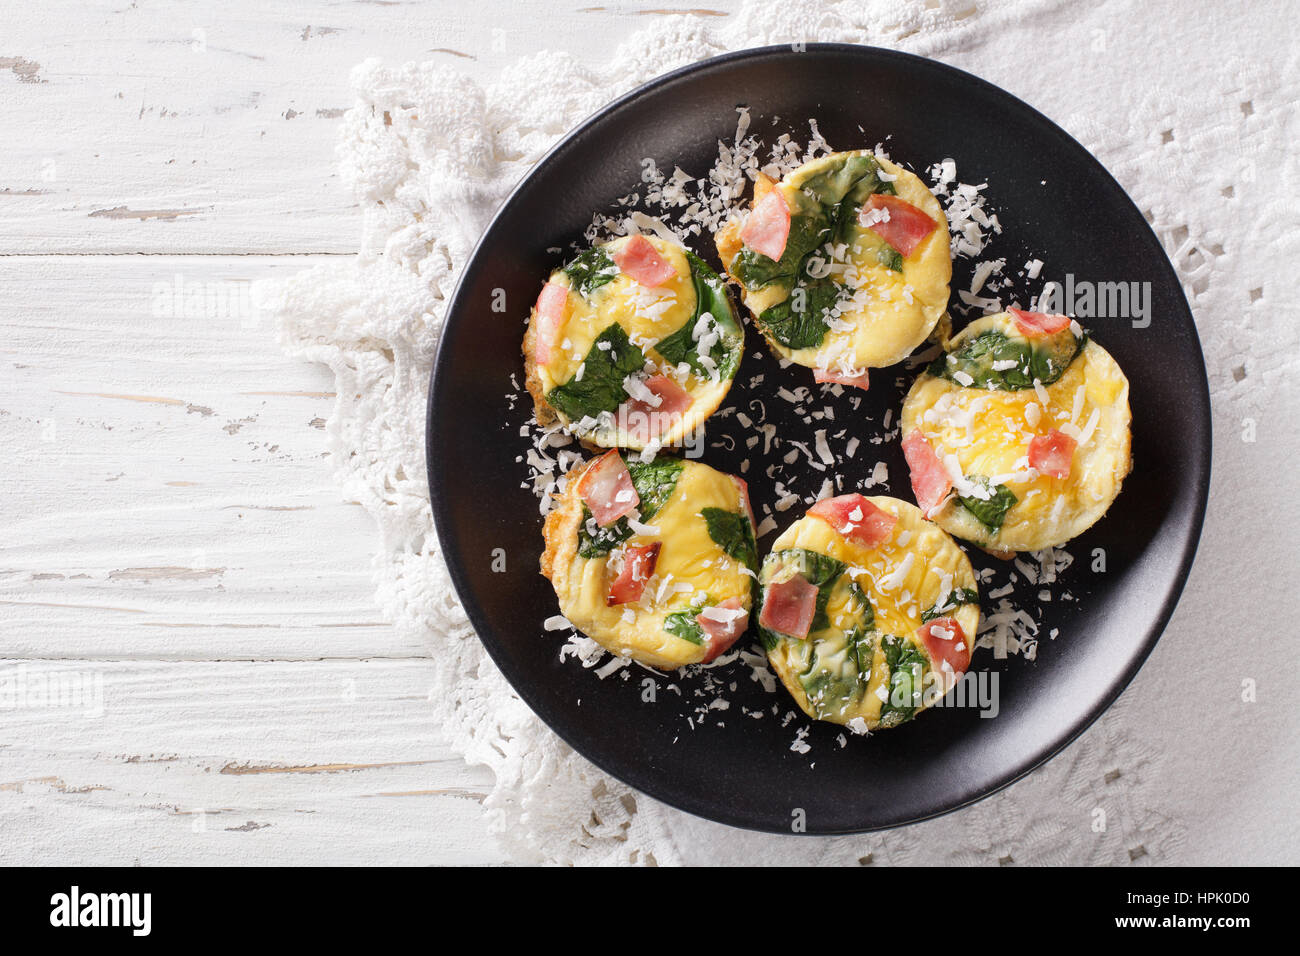 Tasty breakfast: frittata with spinach, ham and cheese on a plate close-up on the table. horizontal view from above - Stock Image